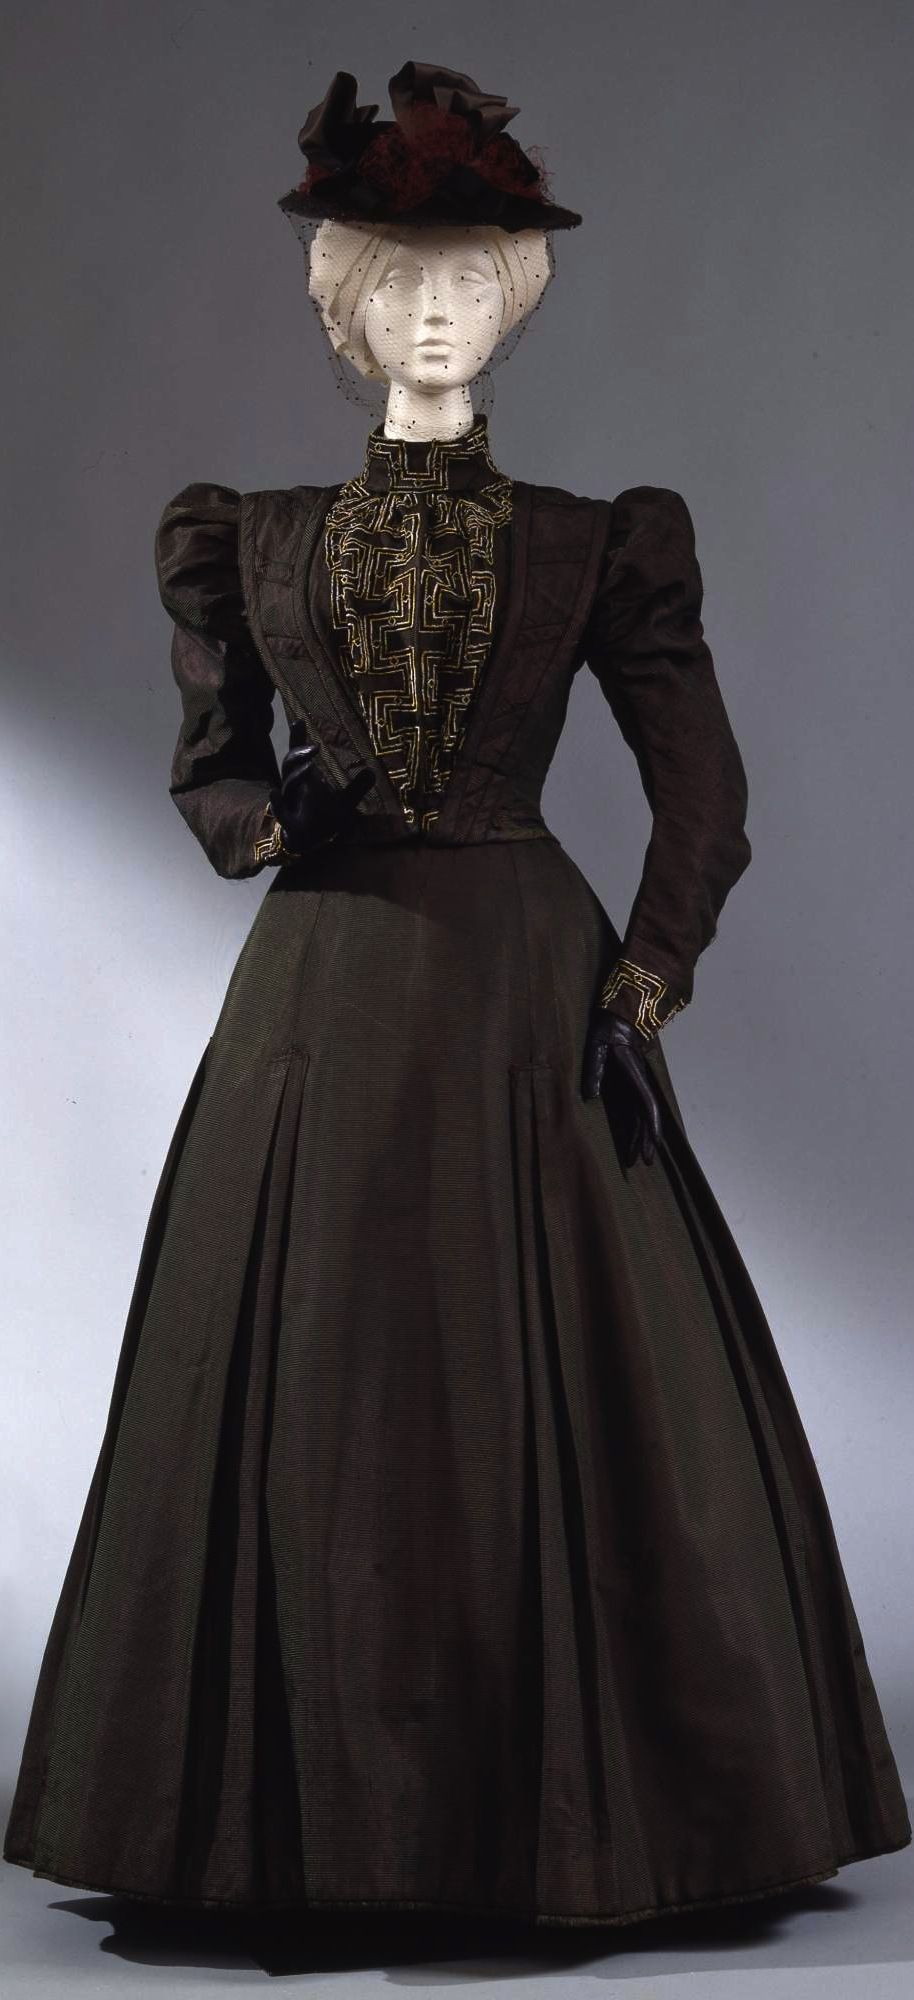 701105f14fbb Walking dress in two parts (bodice and skirt), Italian manufacture, c.  1897-98, at the Pitti Palace Costume Gallery. Via Europeana Fashion.